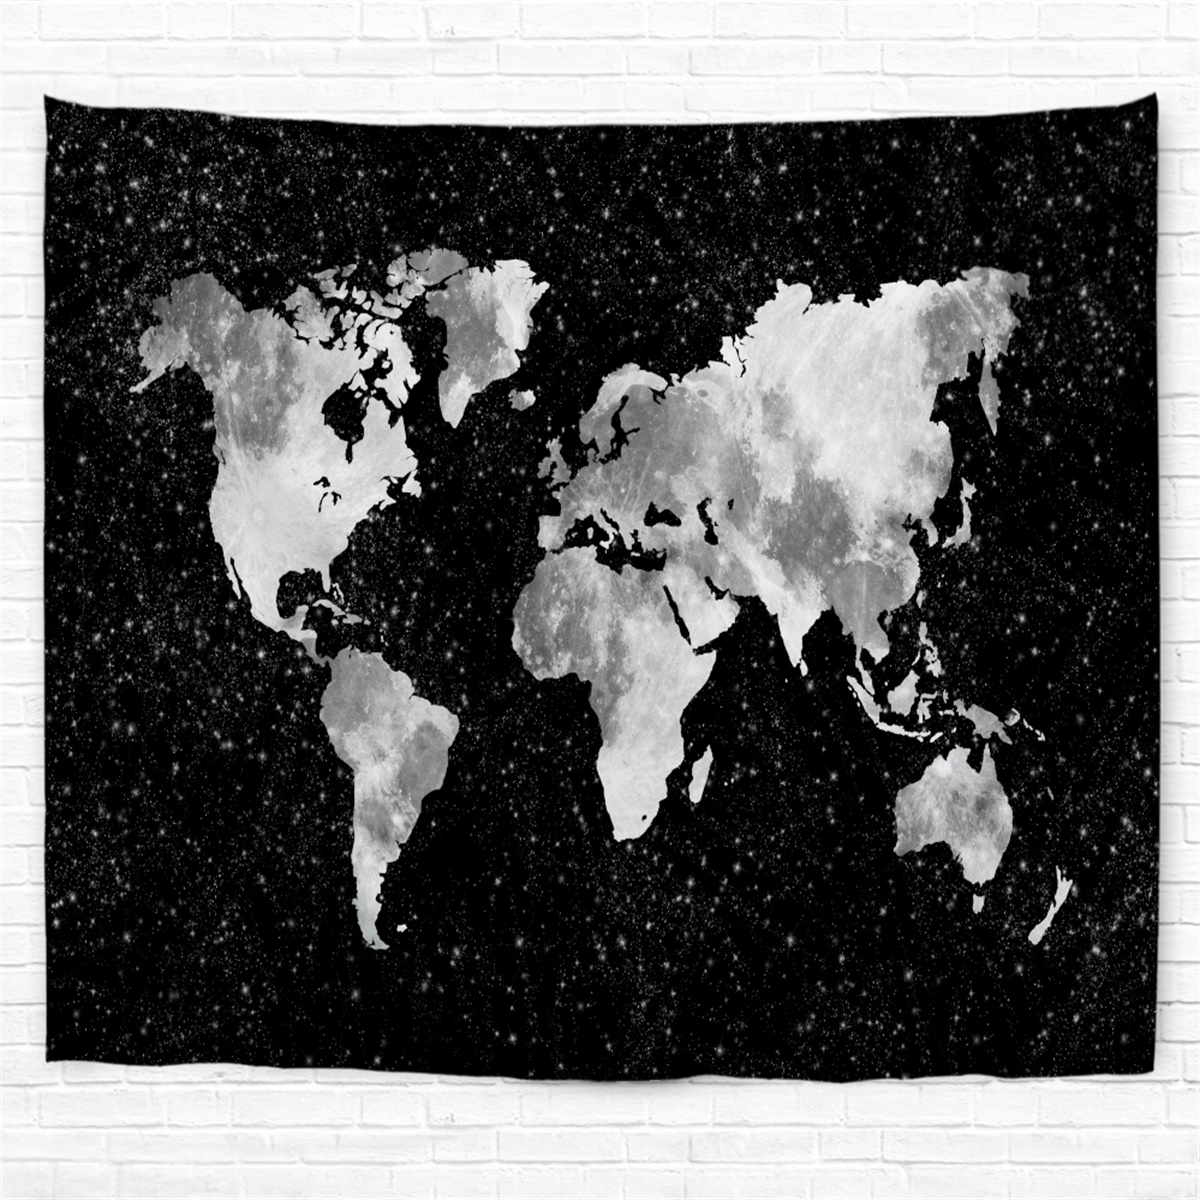 Art Wall Tapestry Home Decorations Printed map Tapisserie Wall Hanging Dorm Living Room Bedroom Decor Rectangle Tapestries